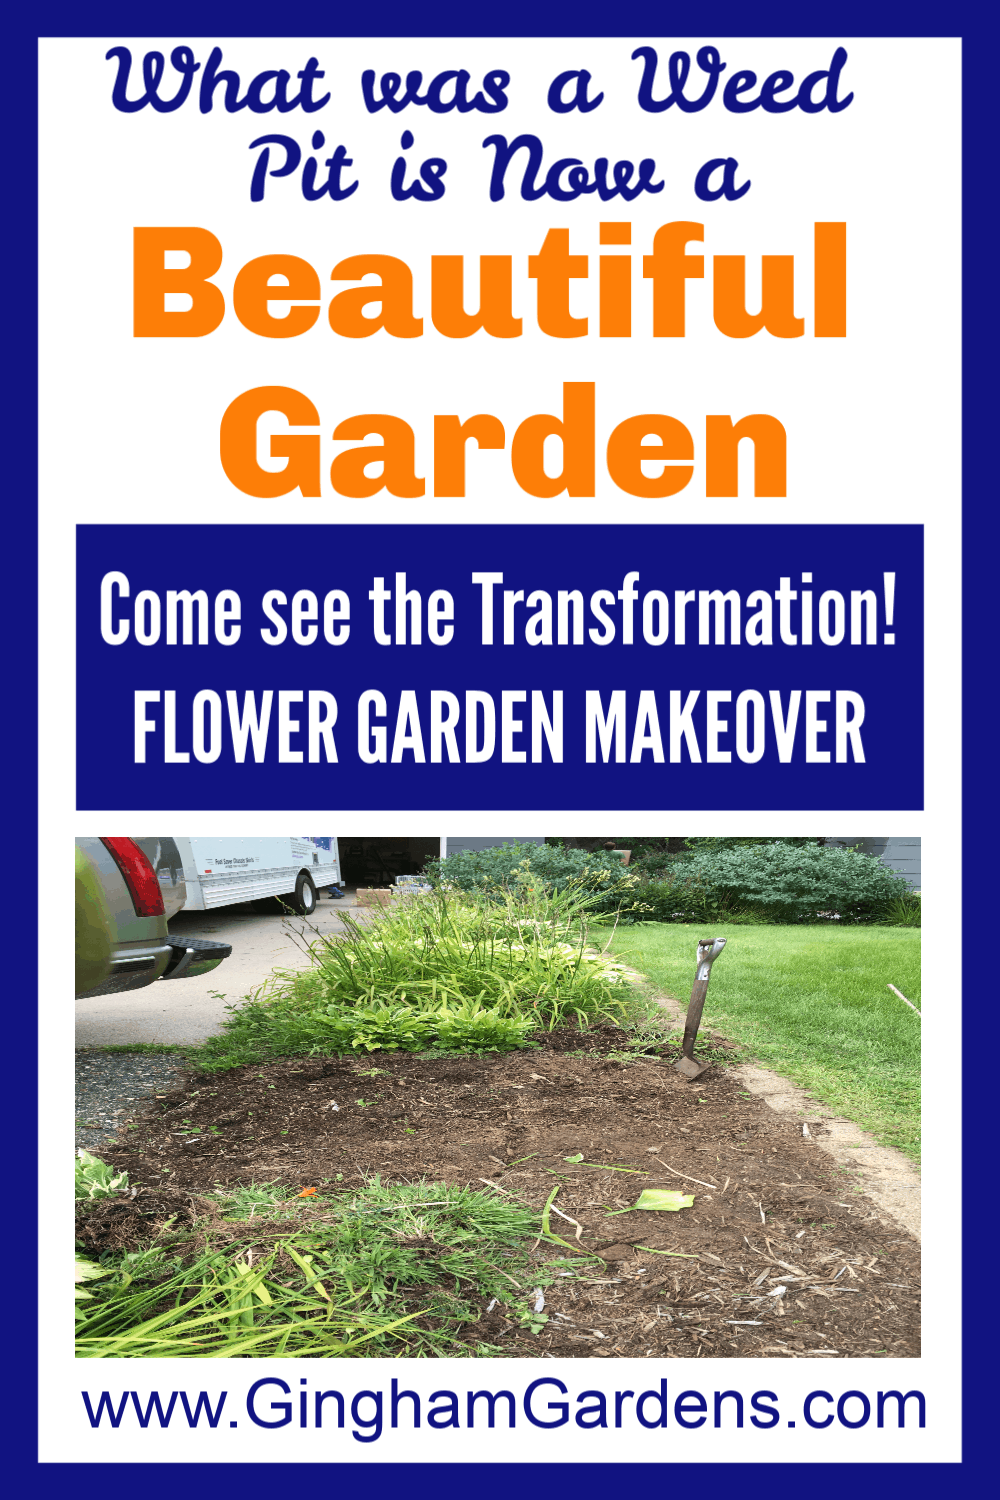 Garden Before Image with text overlay - What was a weed pit is now a Beautiful Garden